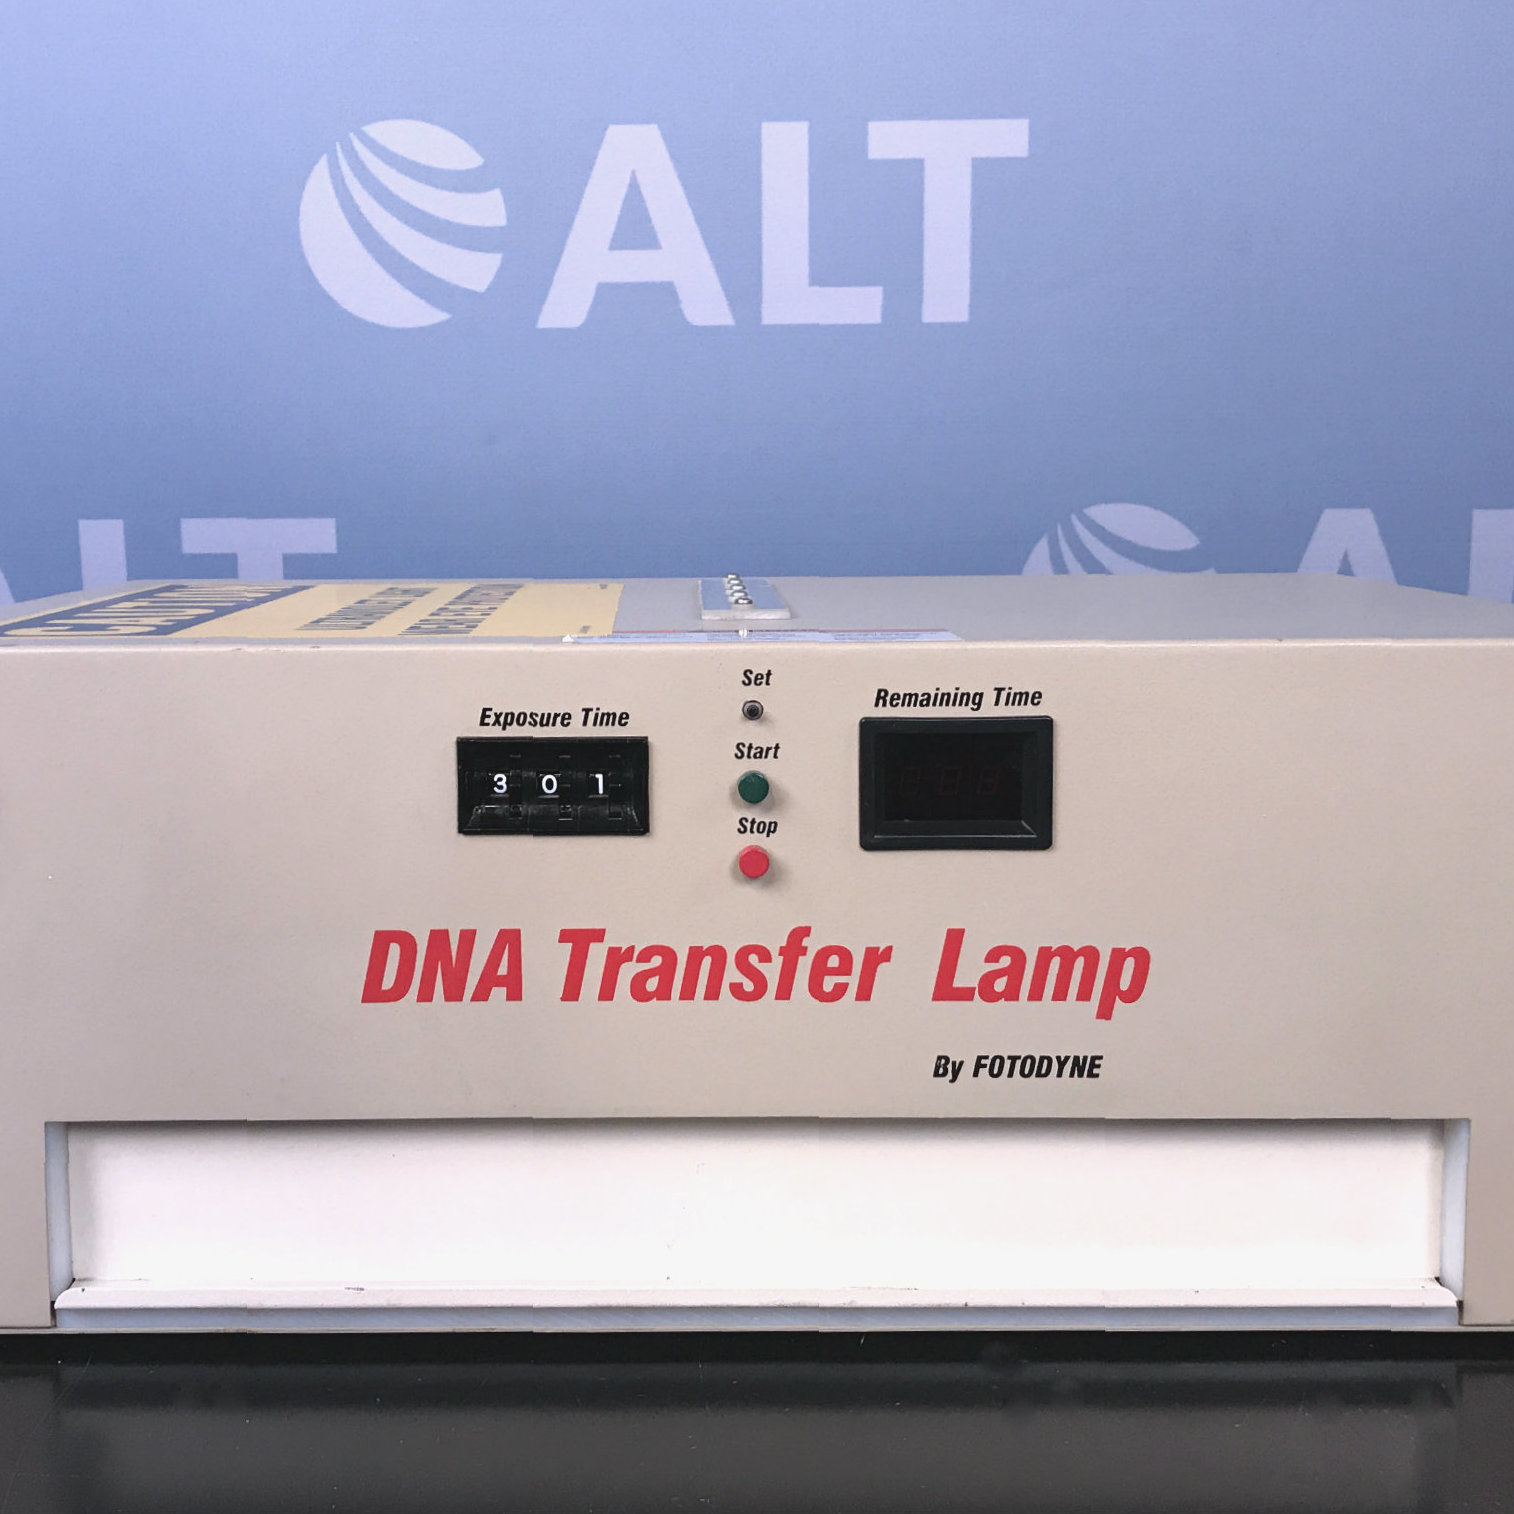 DNA Transfer Lamp Name